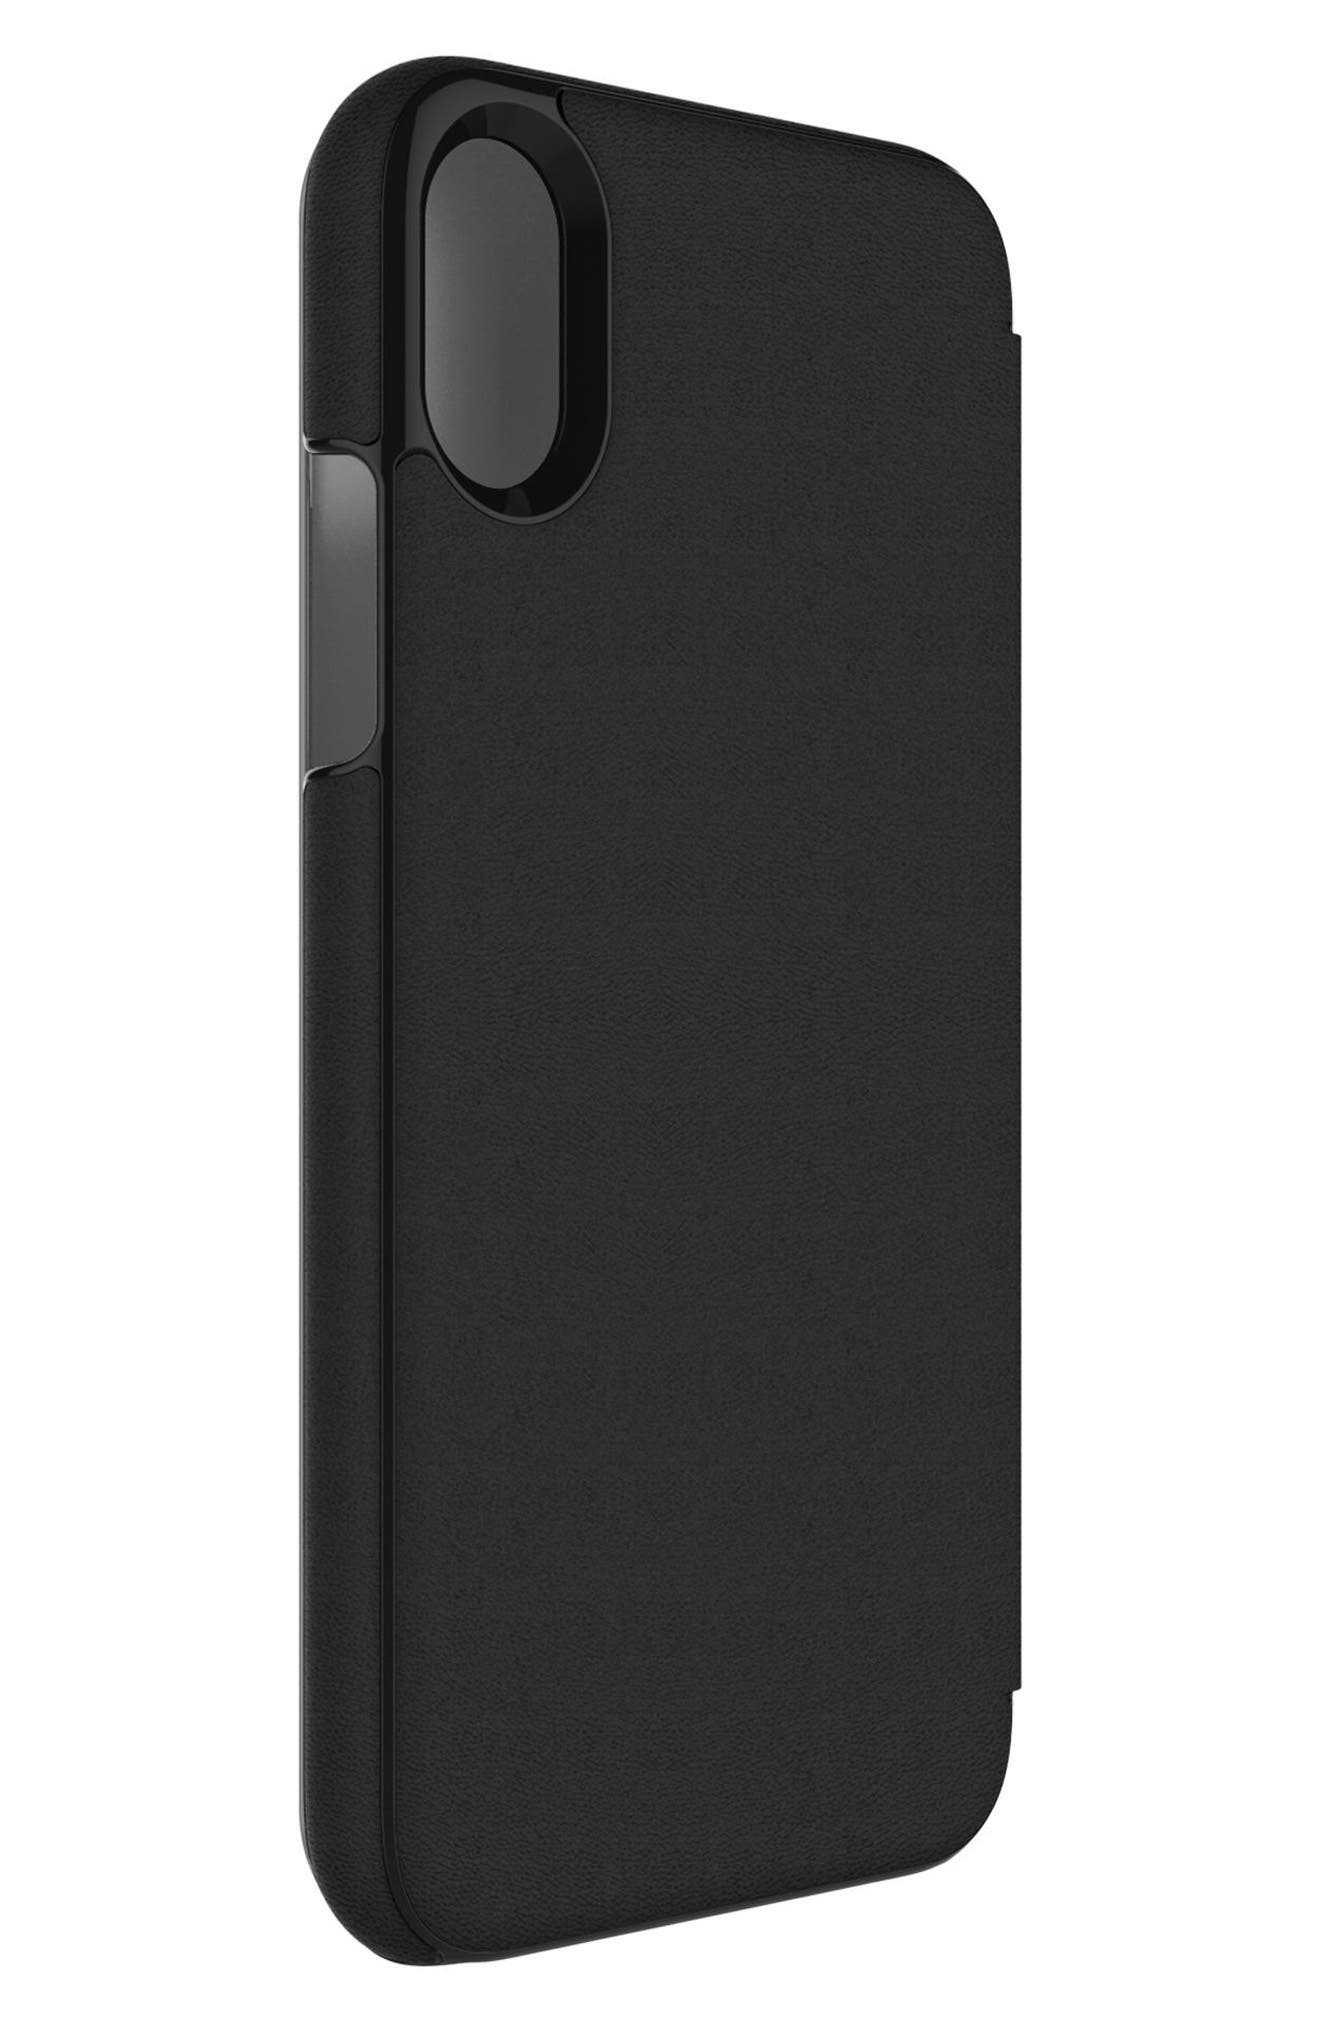 Privacy Folio iPhone X Case,                             Alternate thumbnail 3, color,                             Black Gunmetal